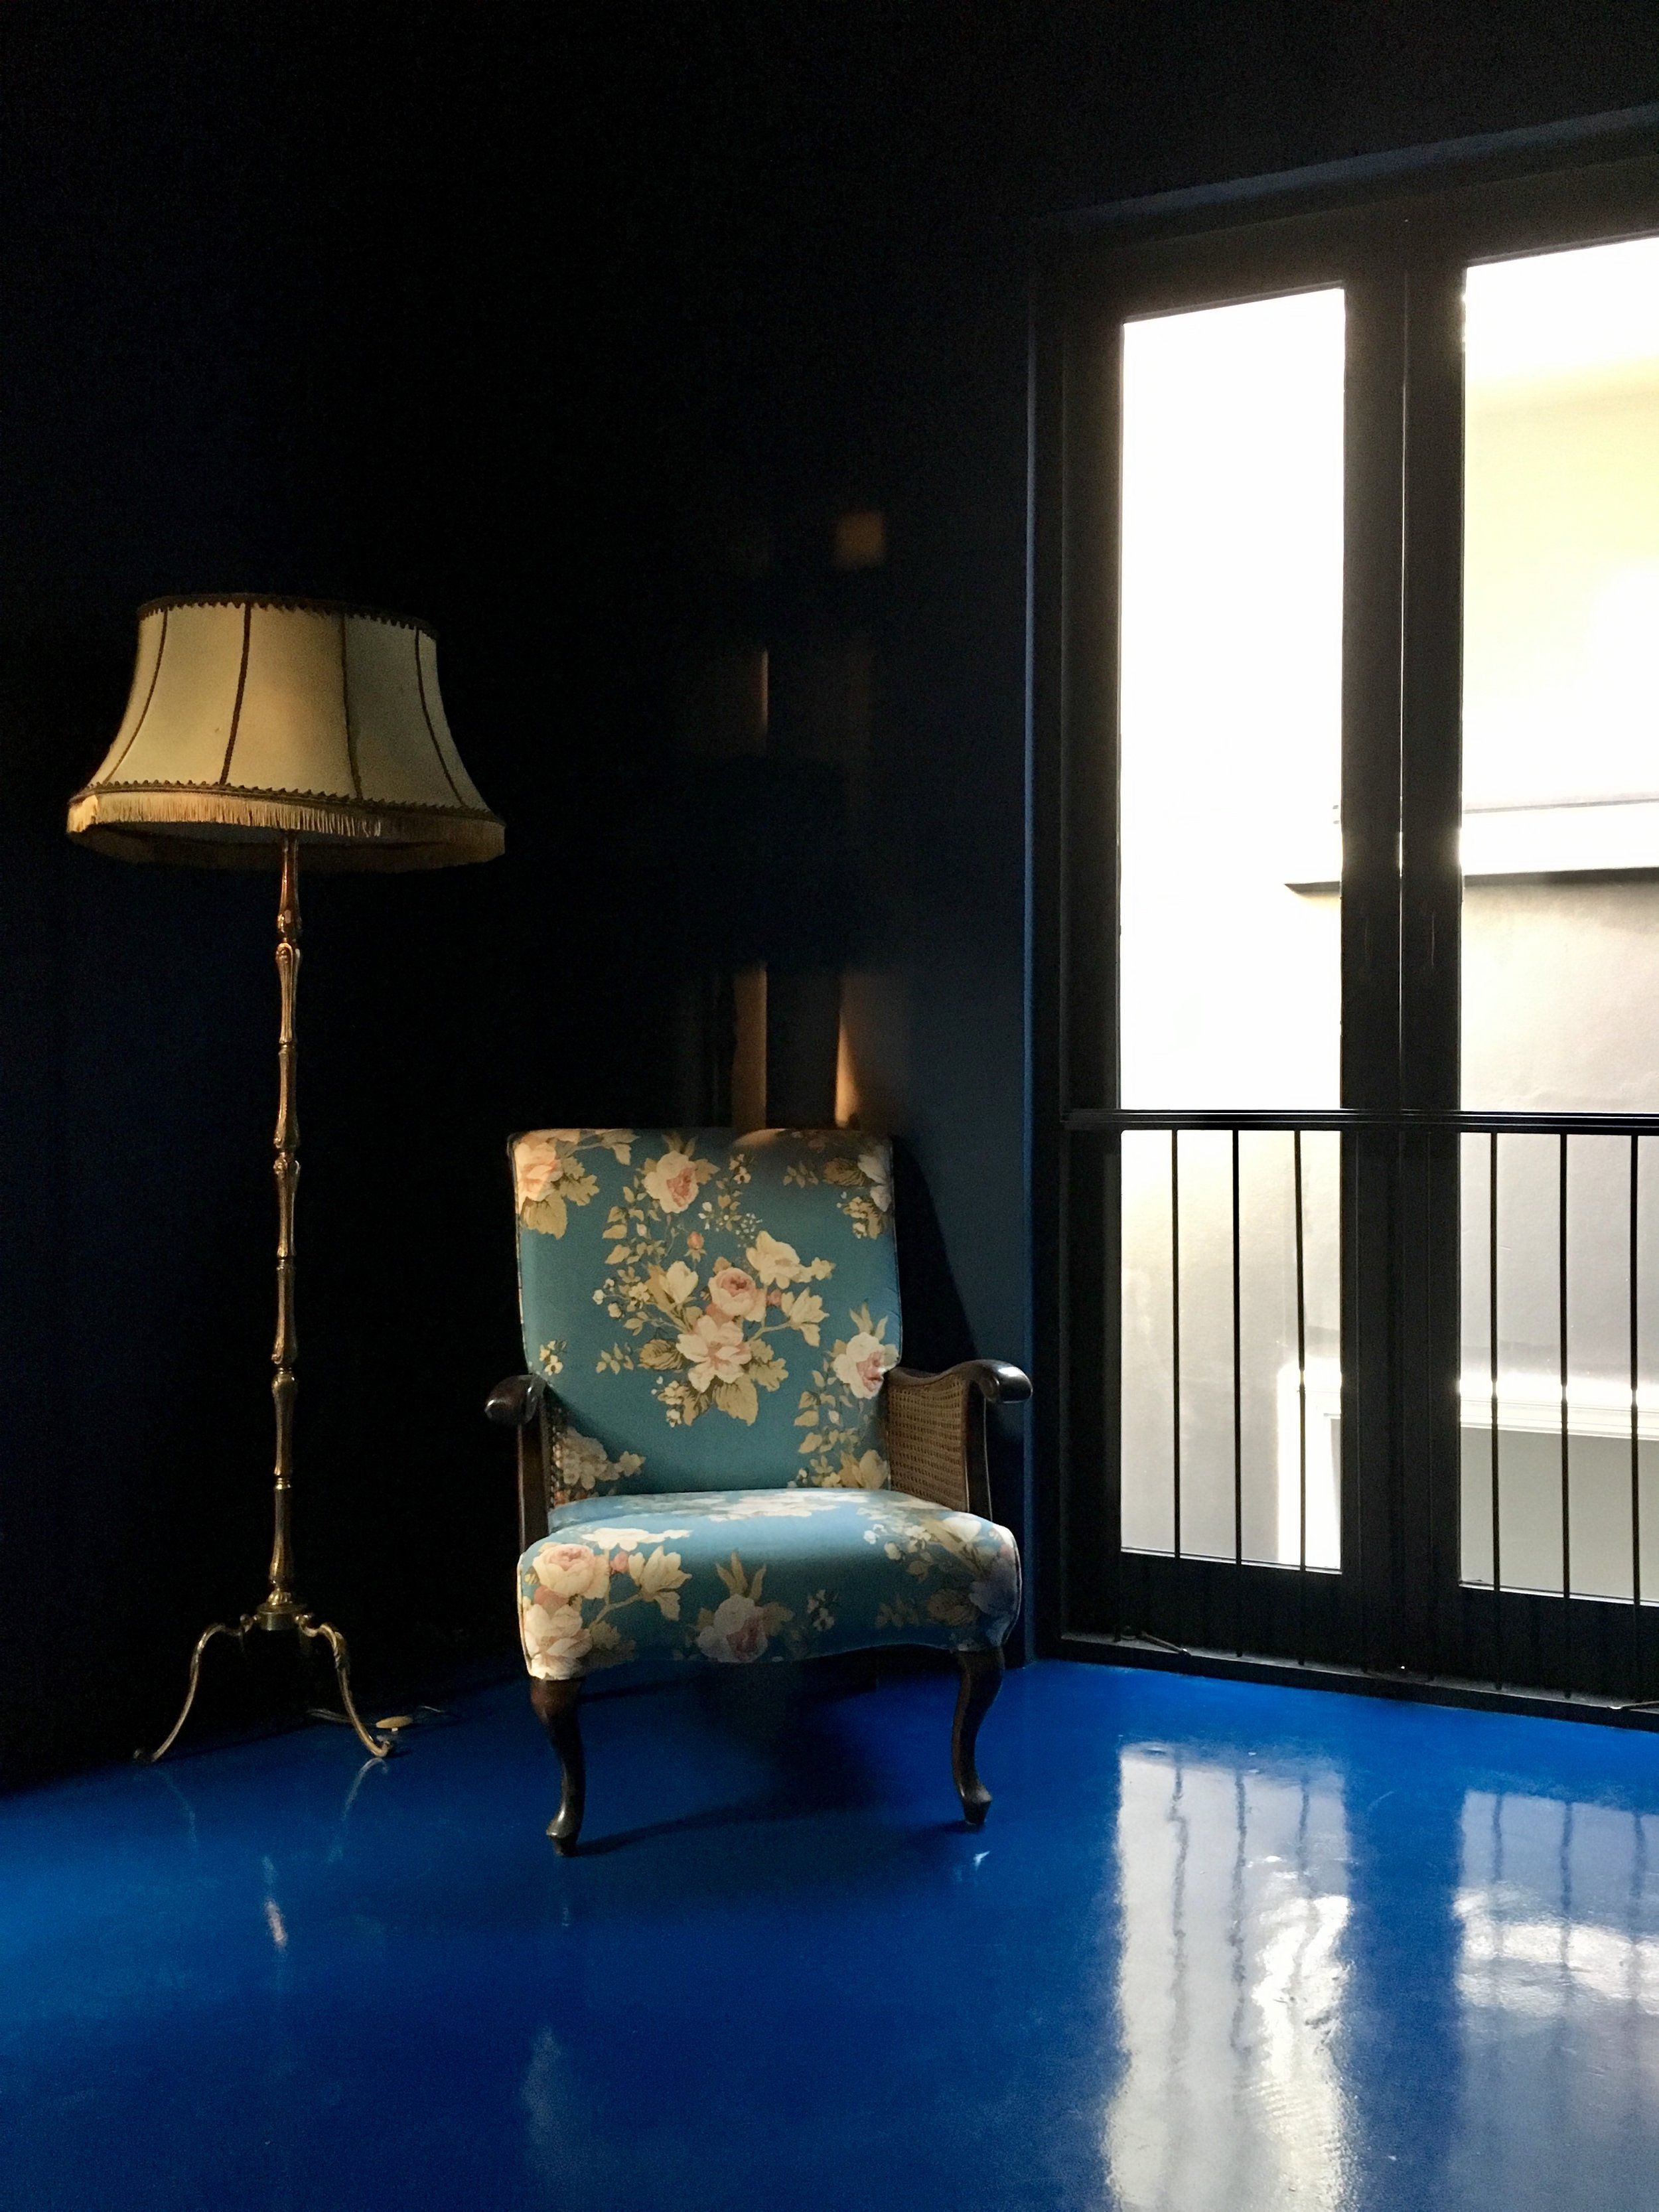 A bright blue floor and chair offer a delightful surprise at the top of the stairs